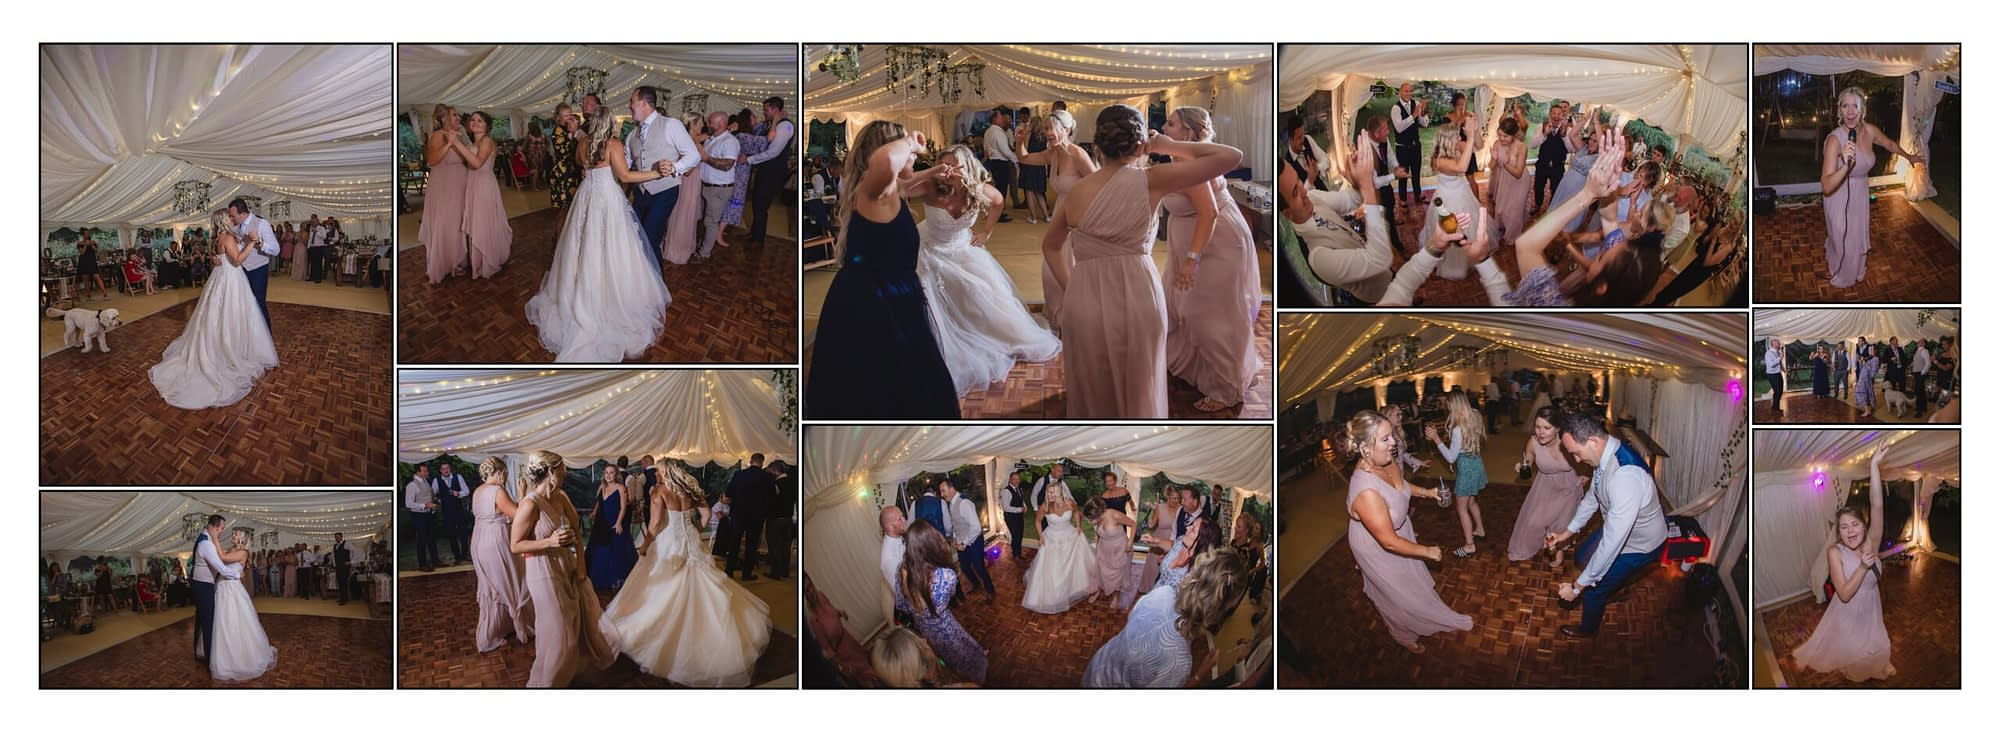 collection of photographs showing guests at a wedding dancing